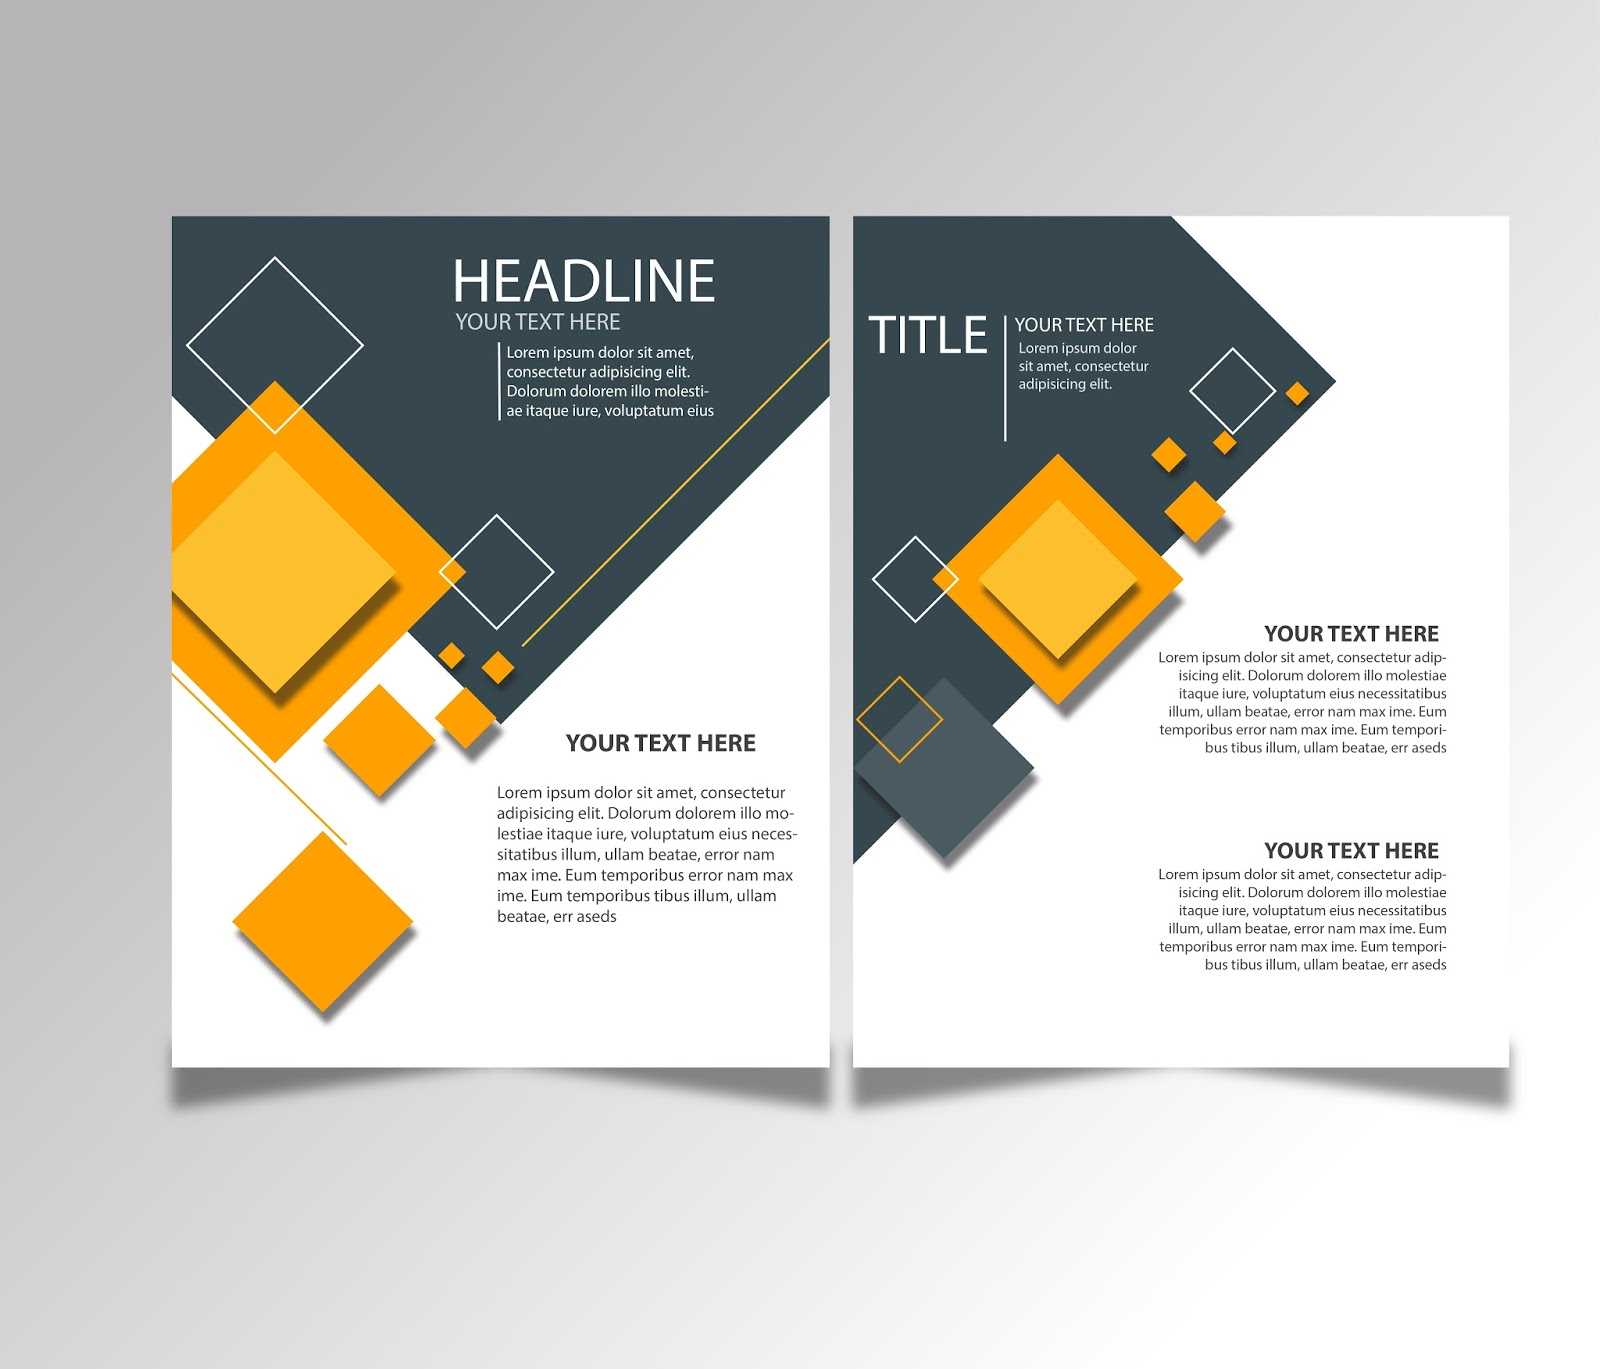 Free Download Brochure Design Templates Ai Files - Ideosprocess Pertaining To Brochure Templates Ai Free Download